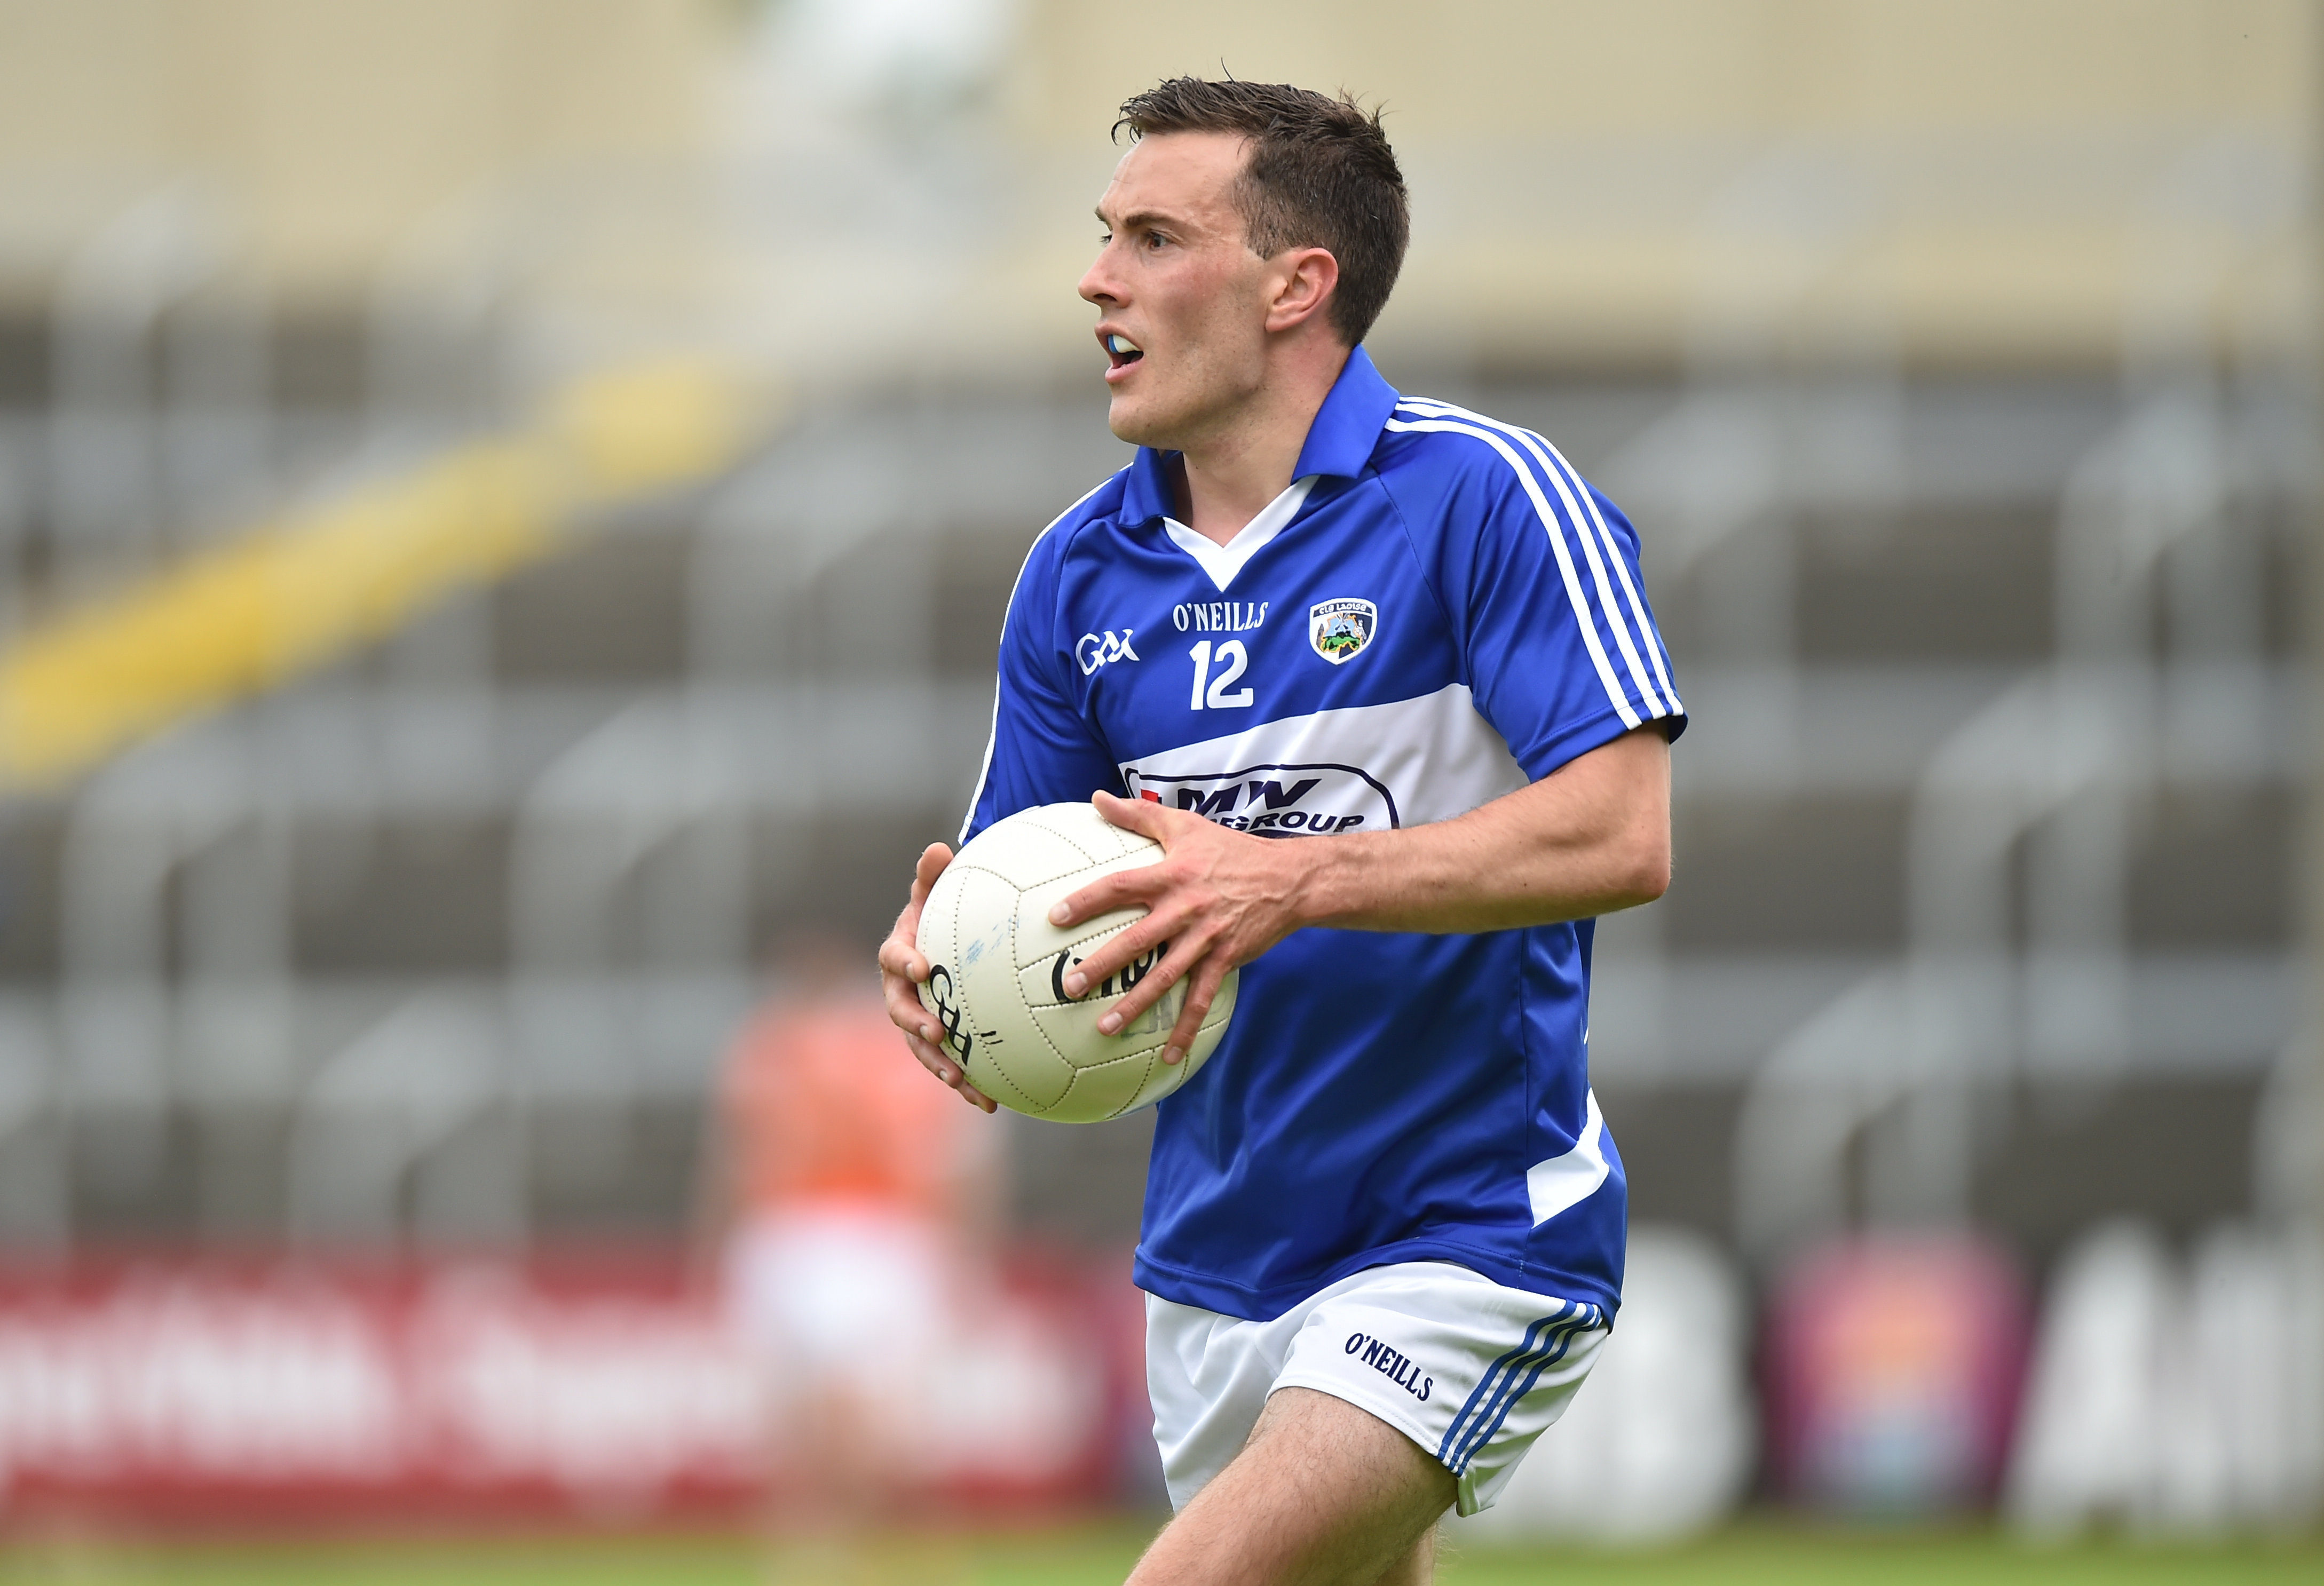 Niall Donoher is fit for selection for Saturday's game against Clare